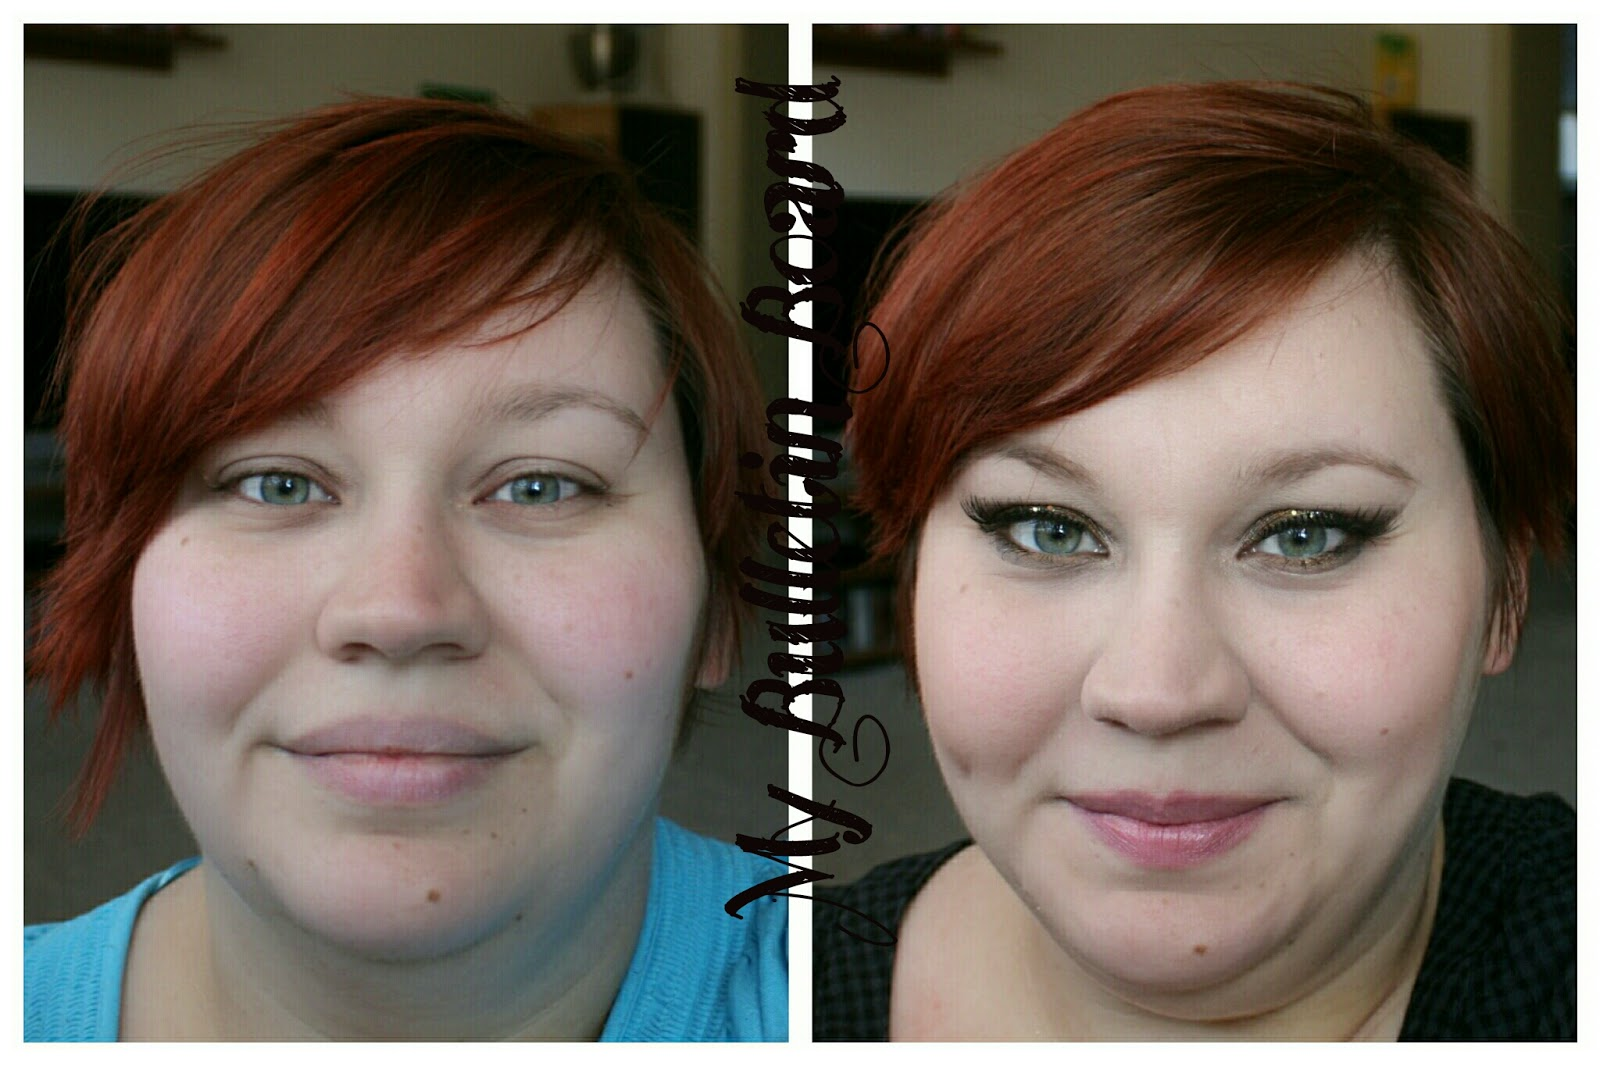 http://my-bulletin-board.blogspot.de/2014/06/mmm-26-vorhernachher-power-of-make-up.html